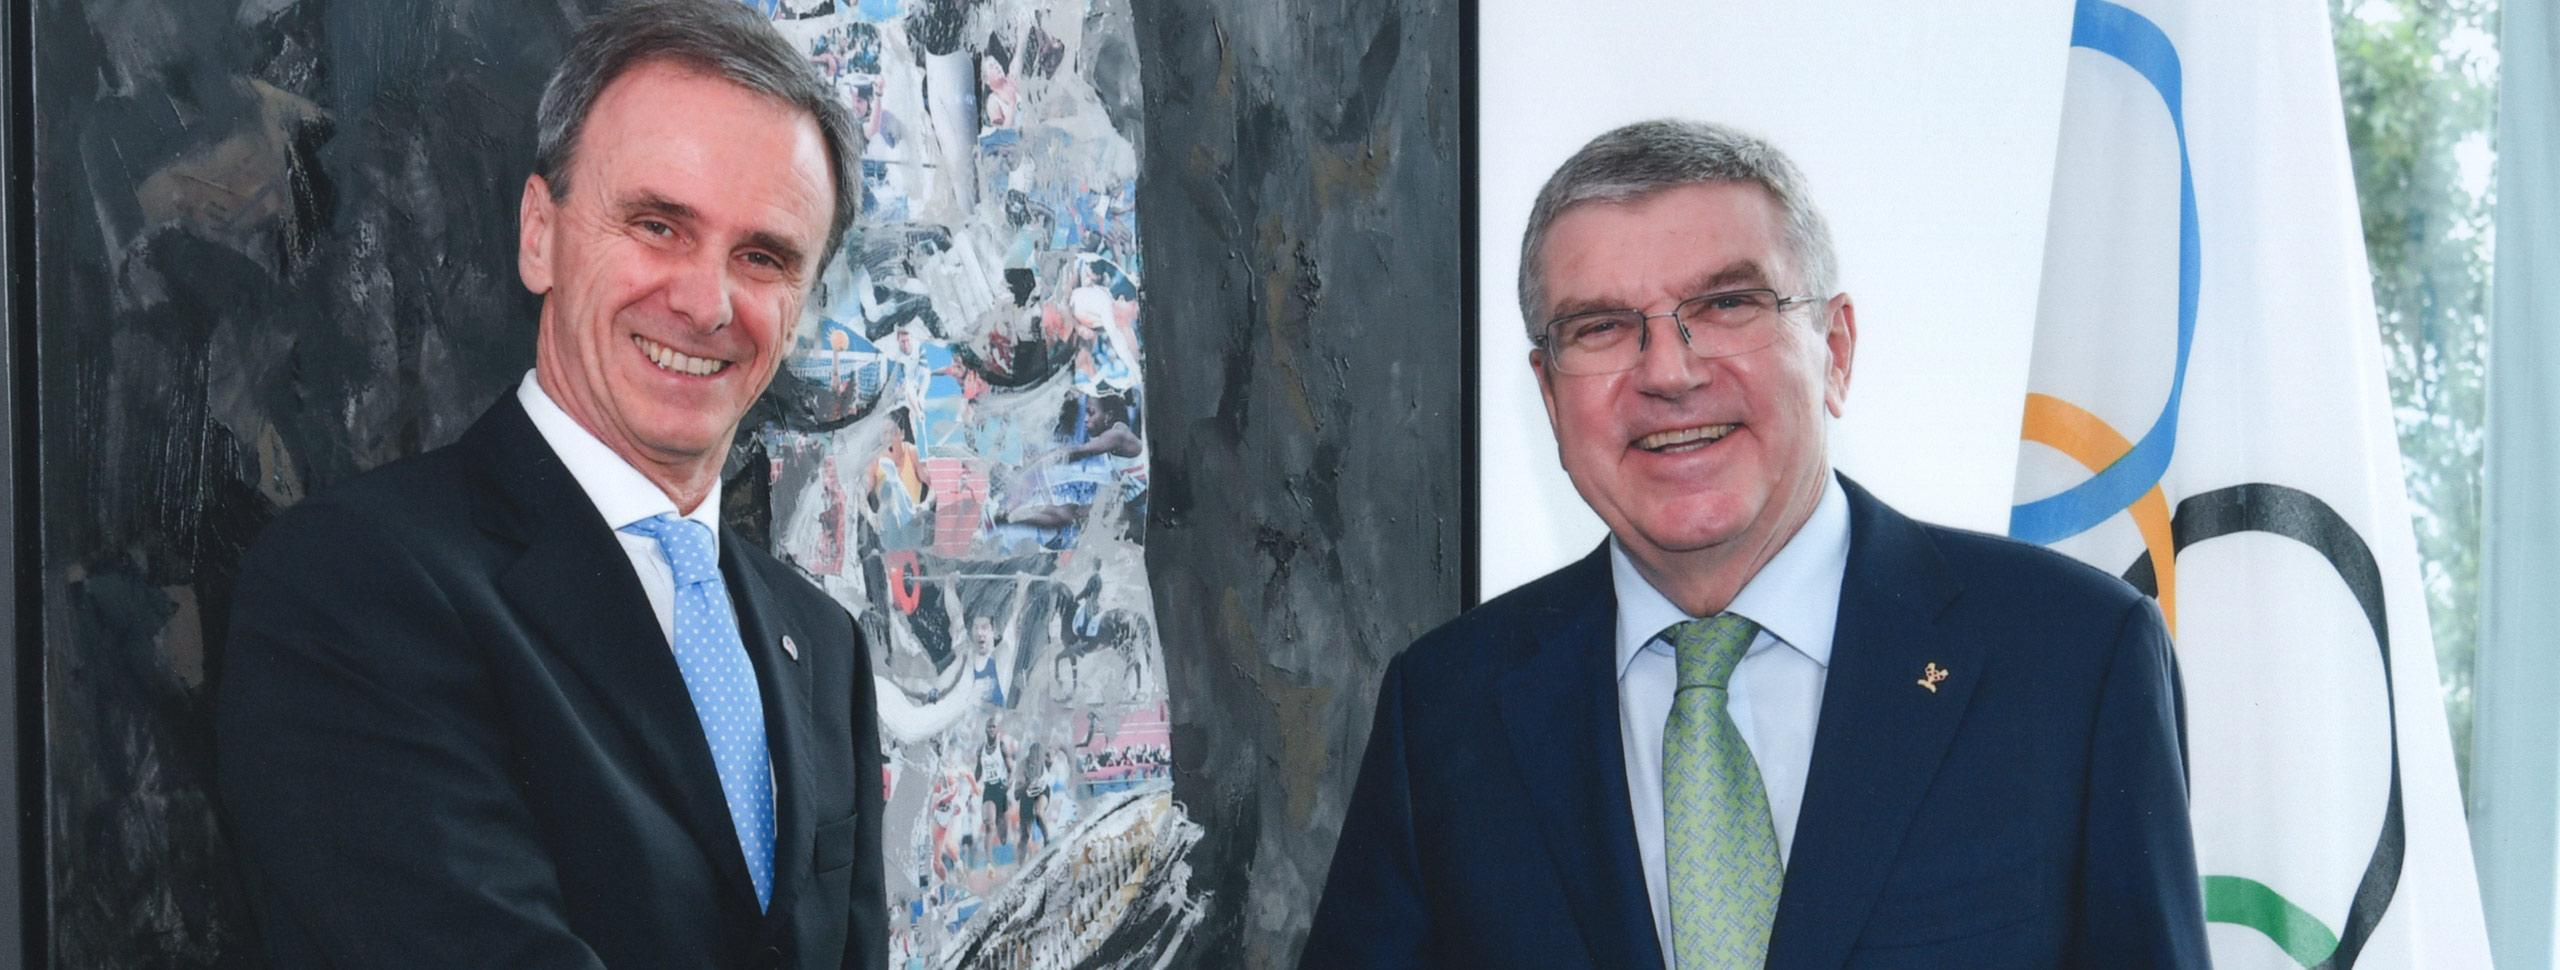 IFSC President Meets President of the IOC in Lausanne, Switzerland